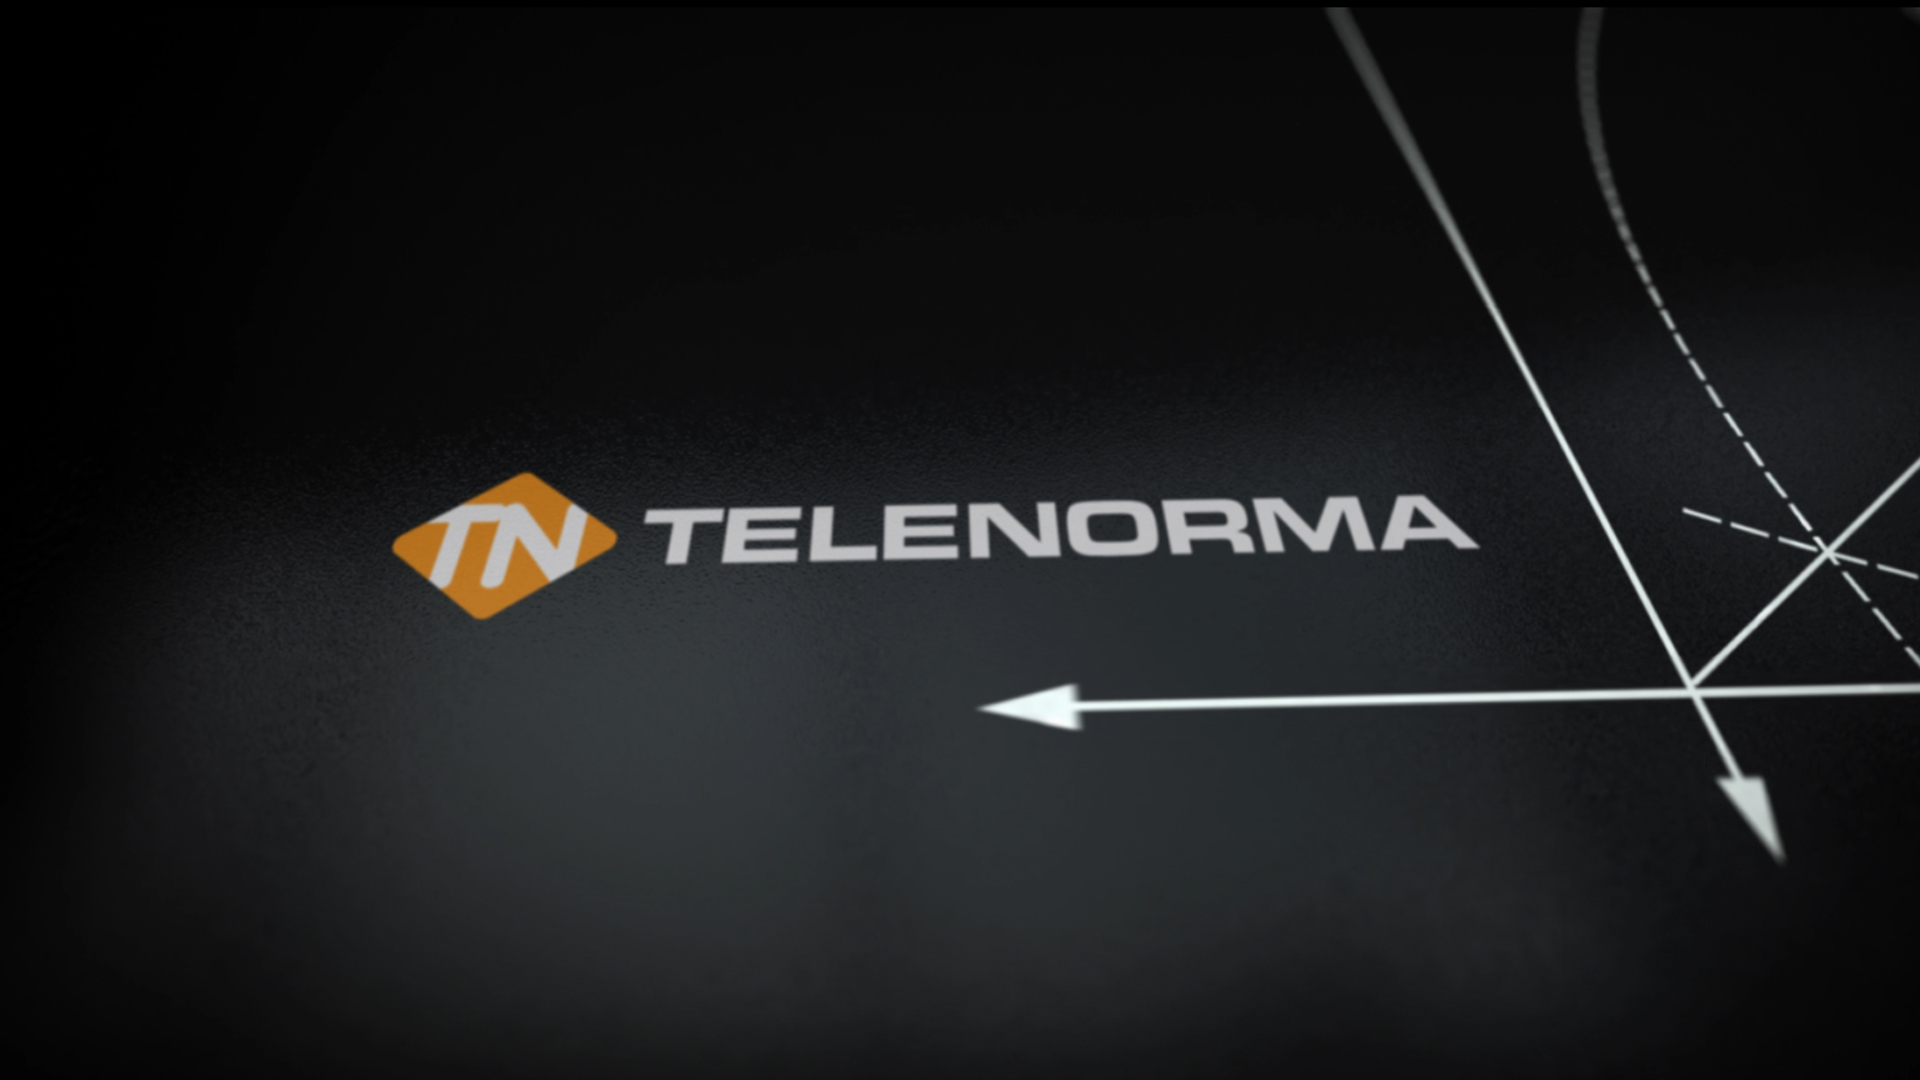 TELENORMA - Rich Media Production, Video-Präsentationen, Produkt-Präsentationen, 3D-Visualisierung und 3D-Animationen